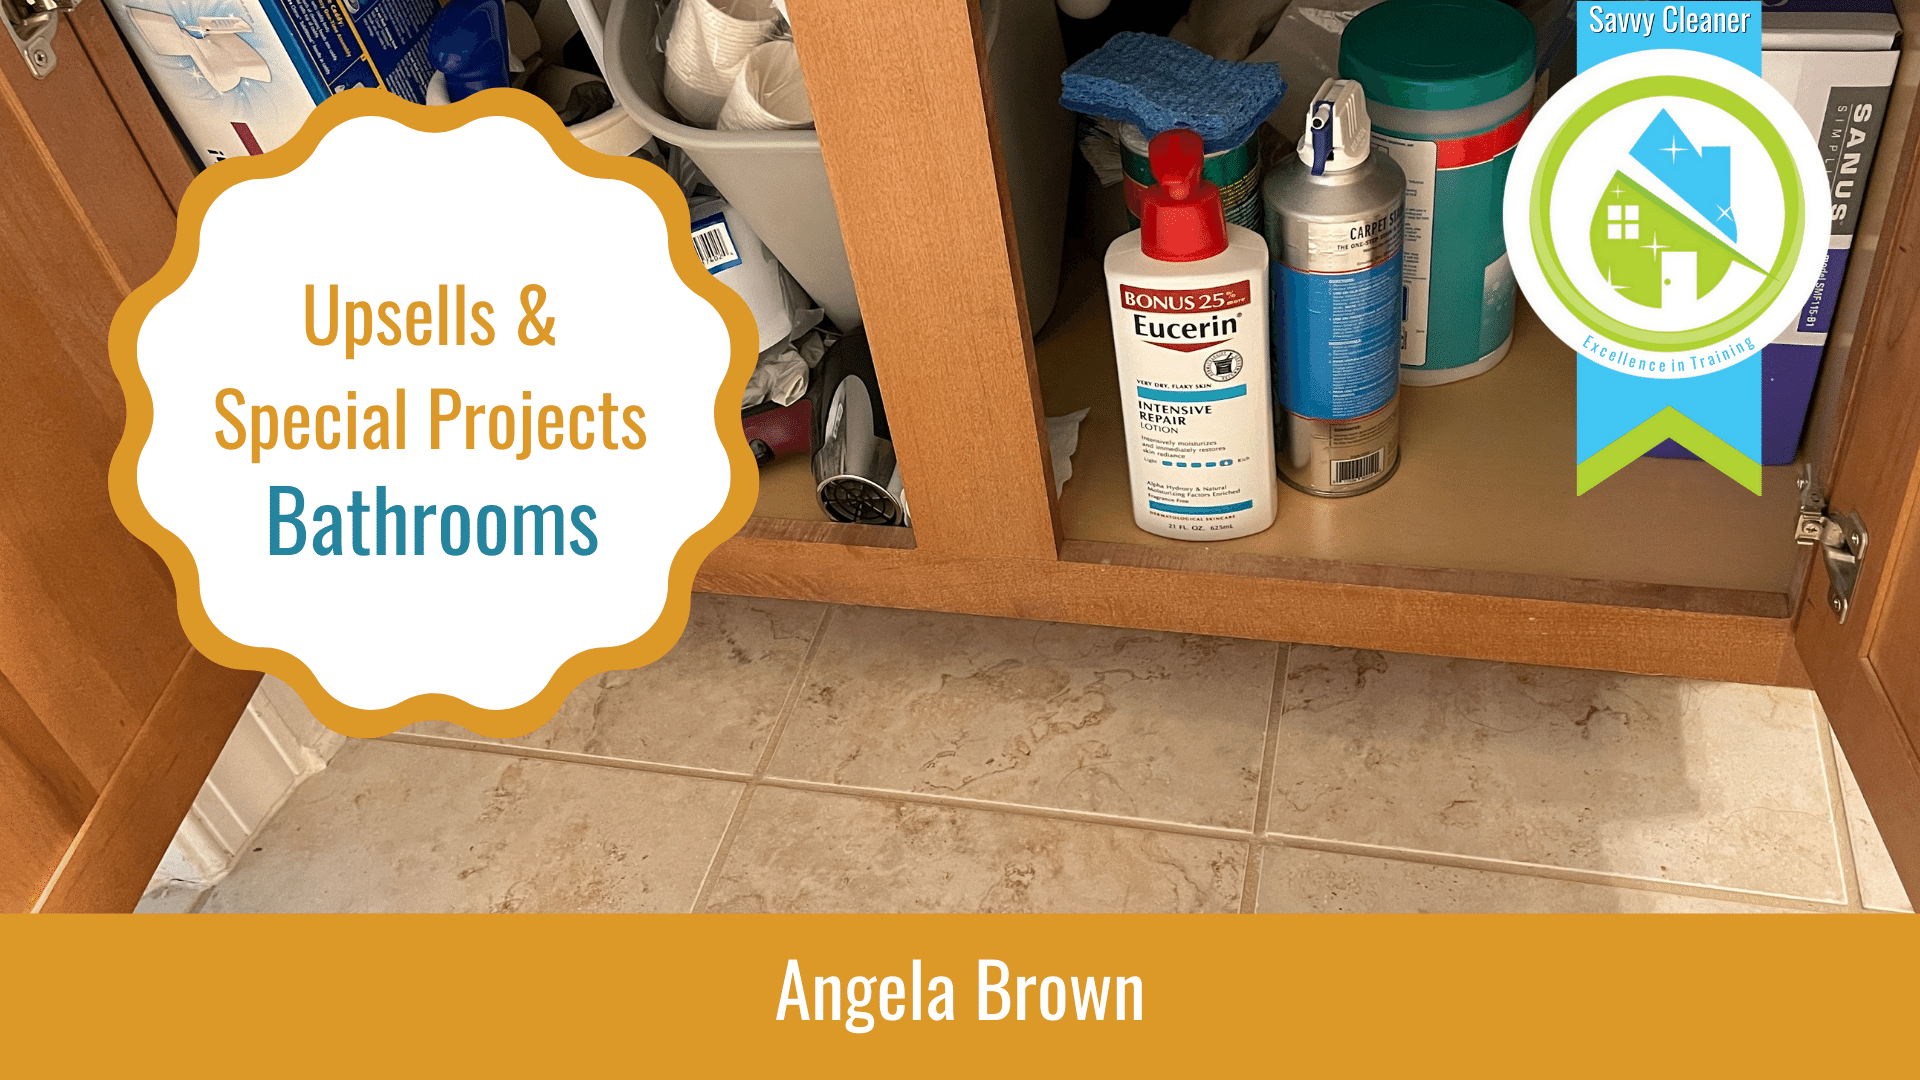 Upsells and Special Projects Bathroom Packages